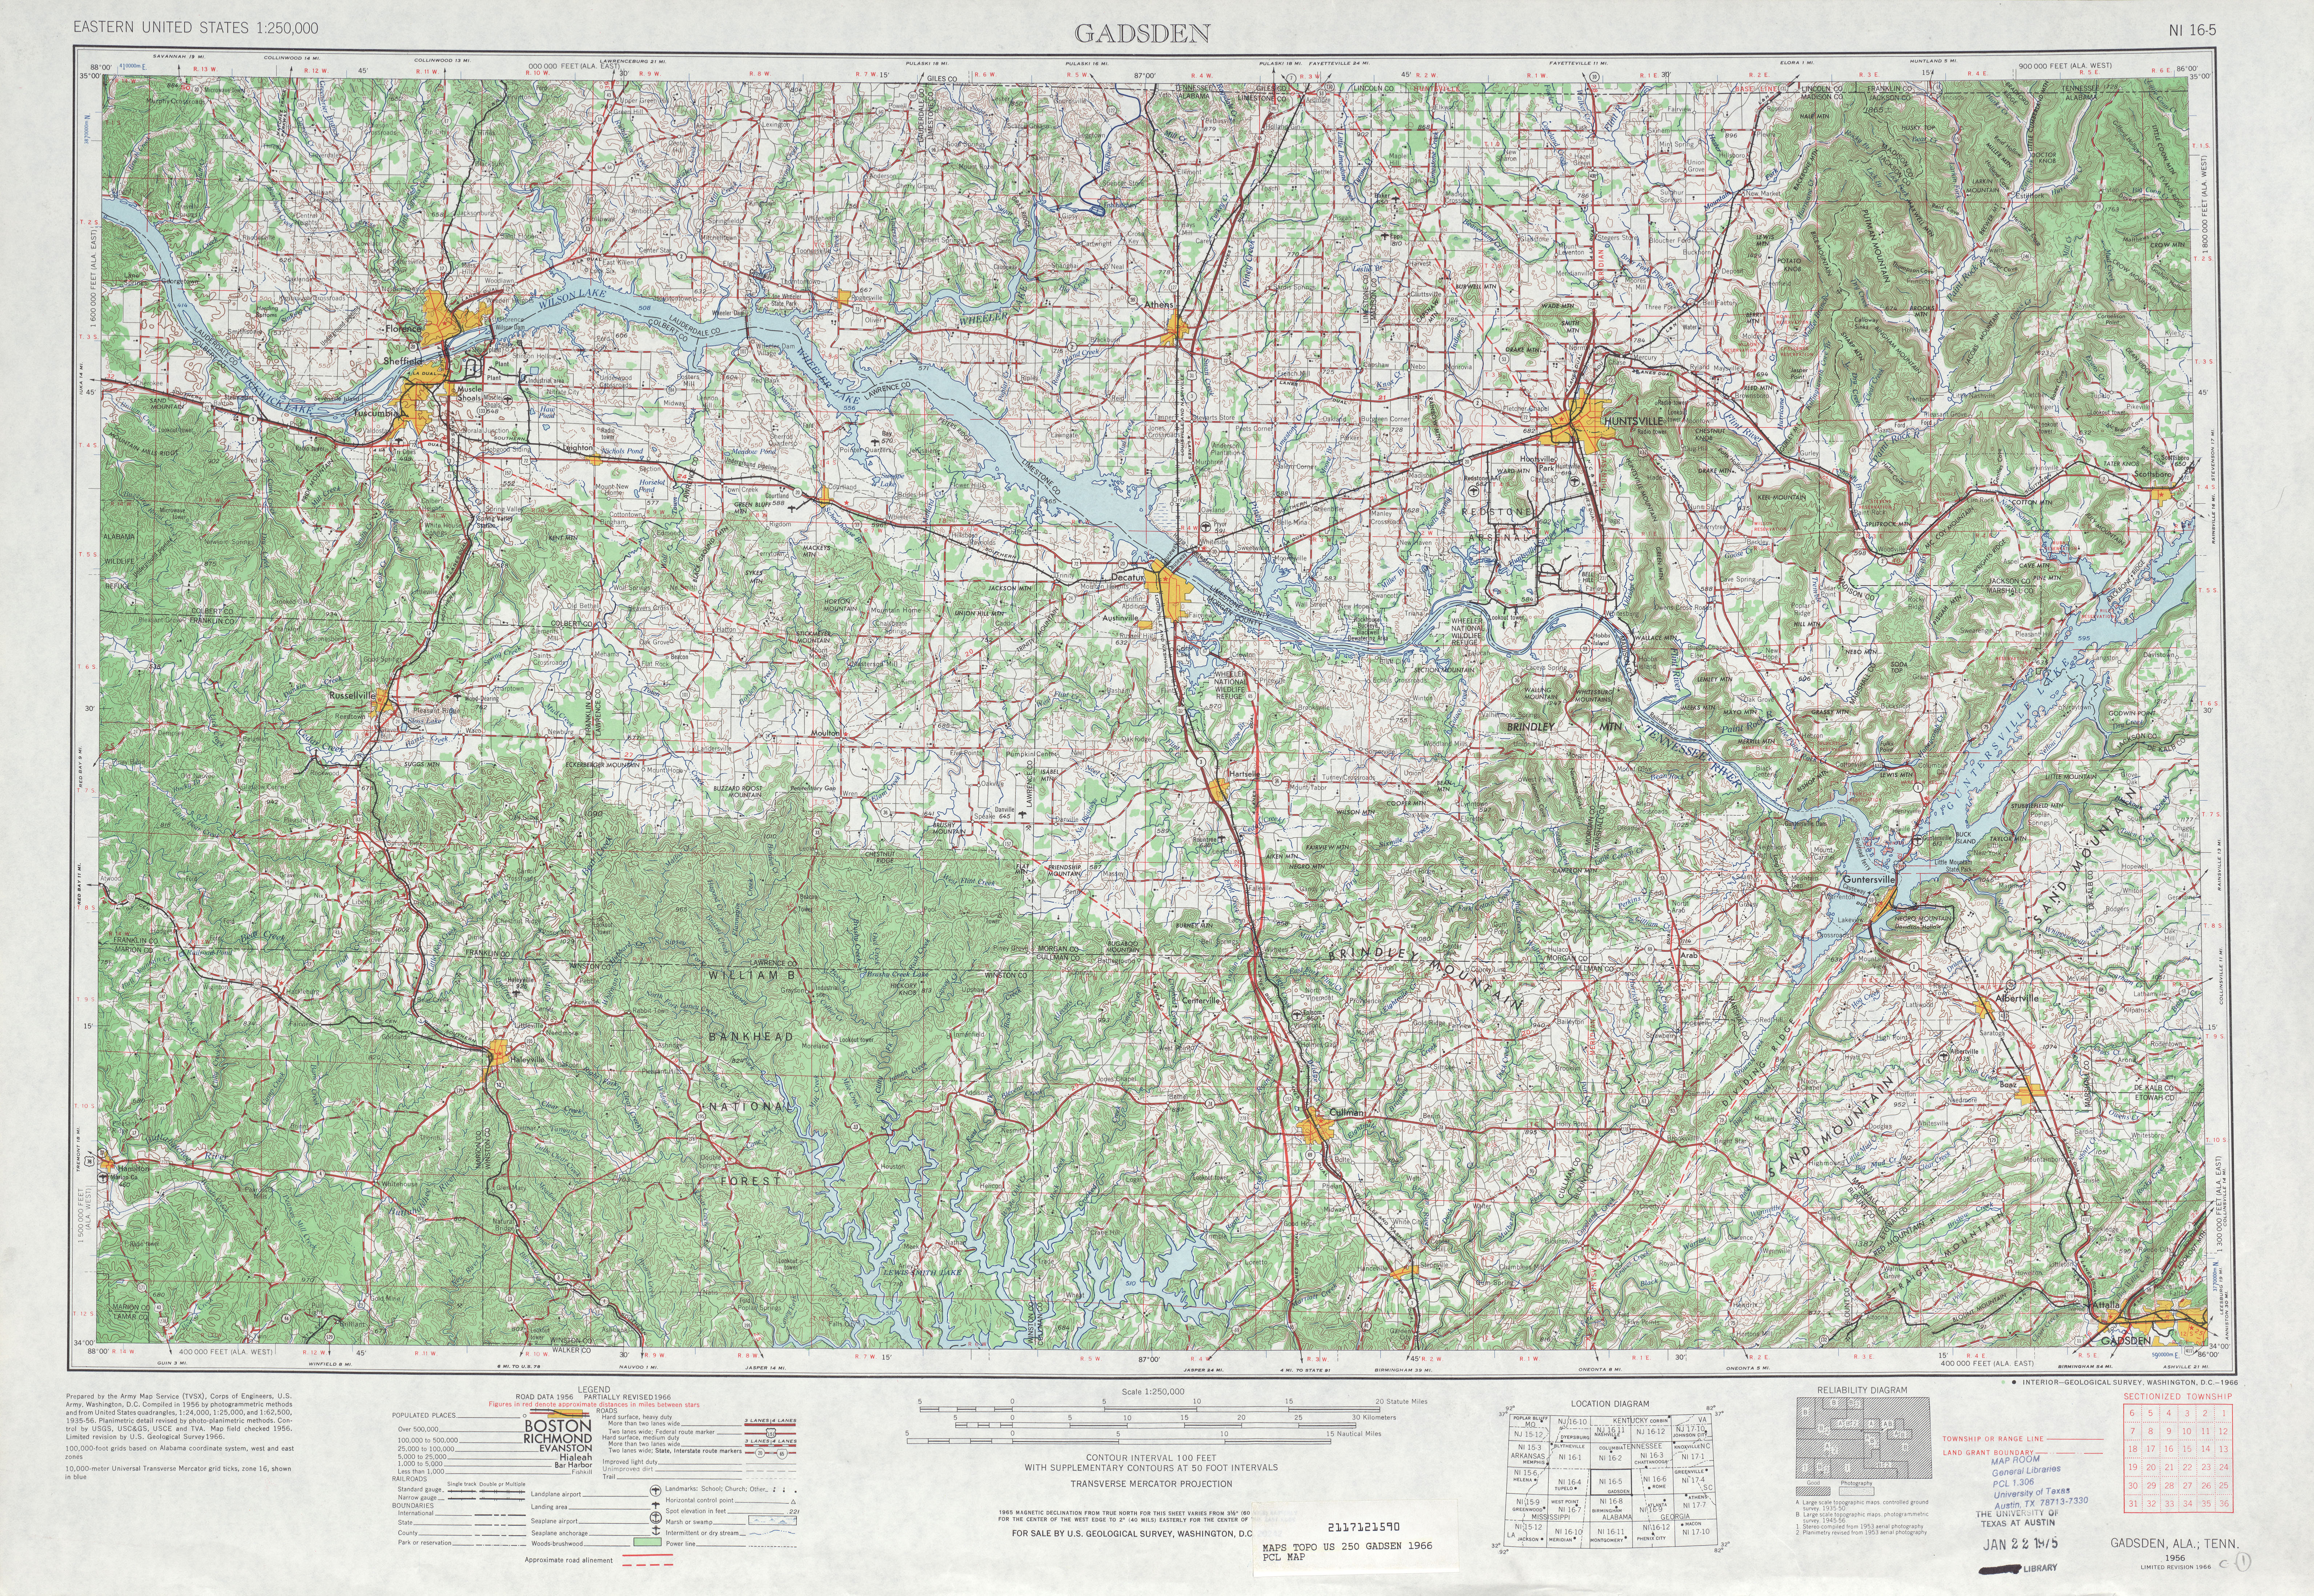 Gadsen Topographic Map Sheet, United States 1966